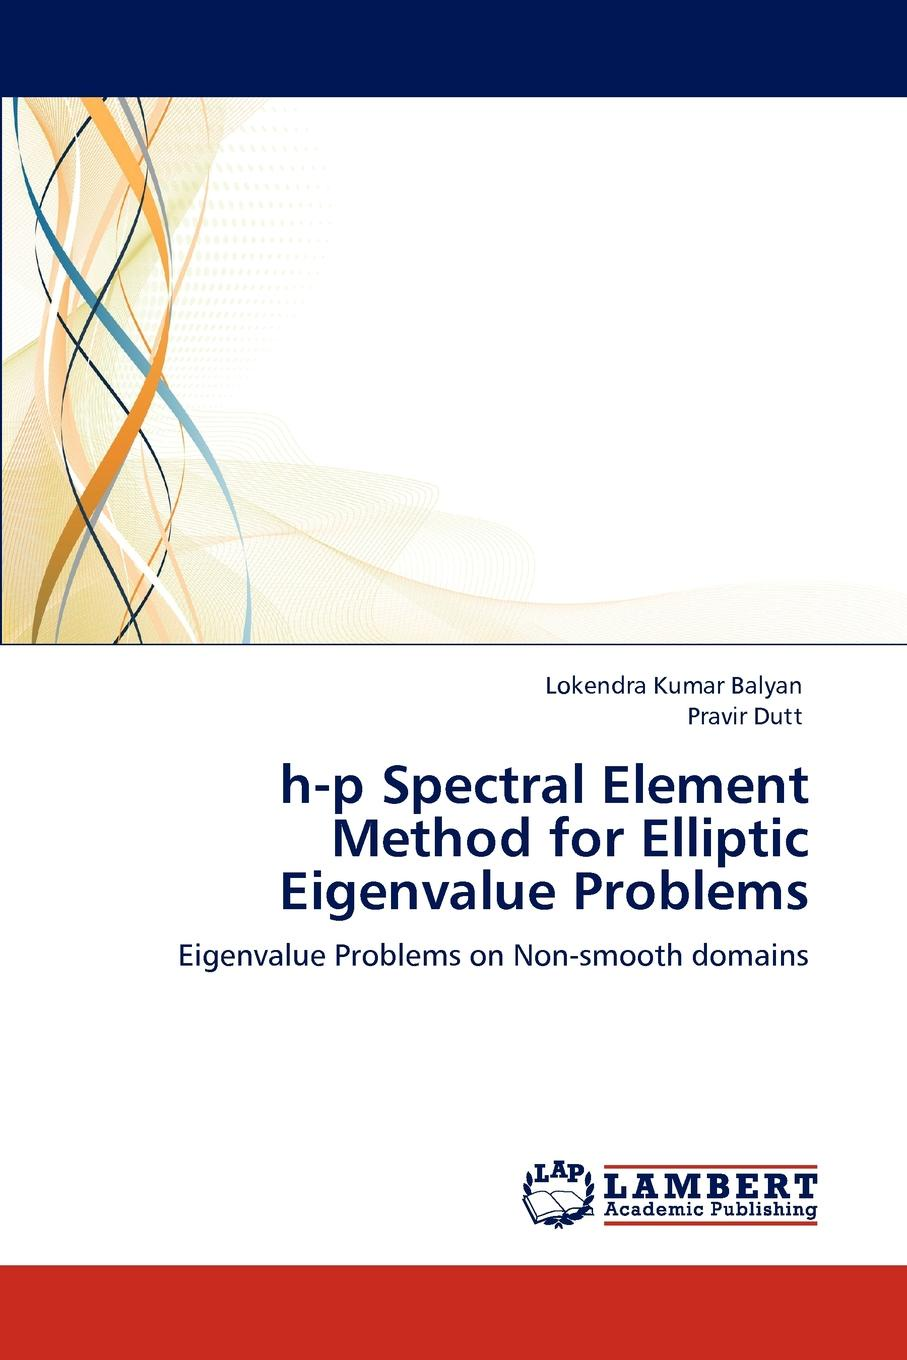 Lokendra Kumar Balyan, Pravir Dutt H-P Spectral Element Method for Elliptic Eigenvalue Problems